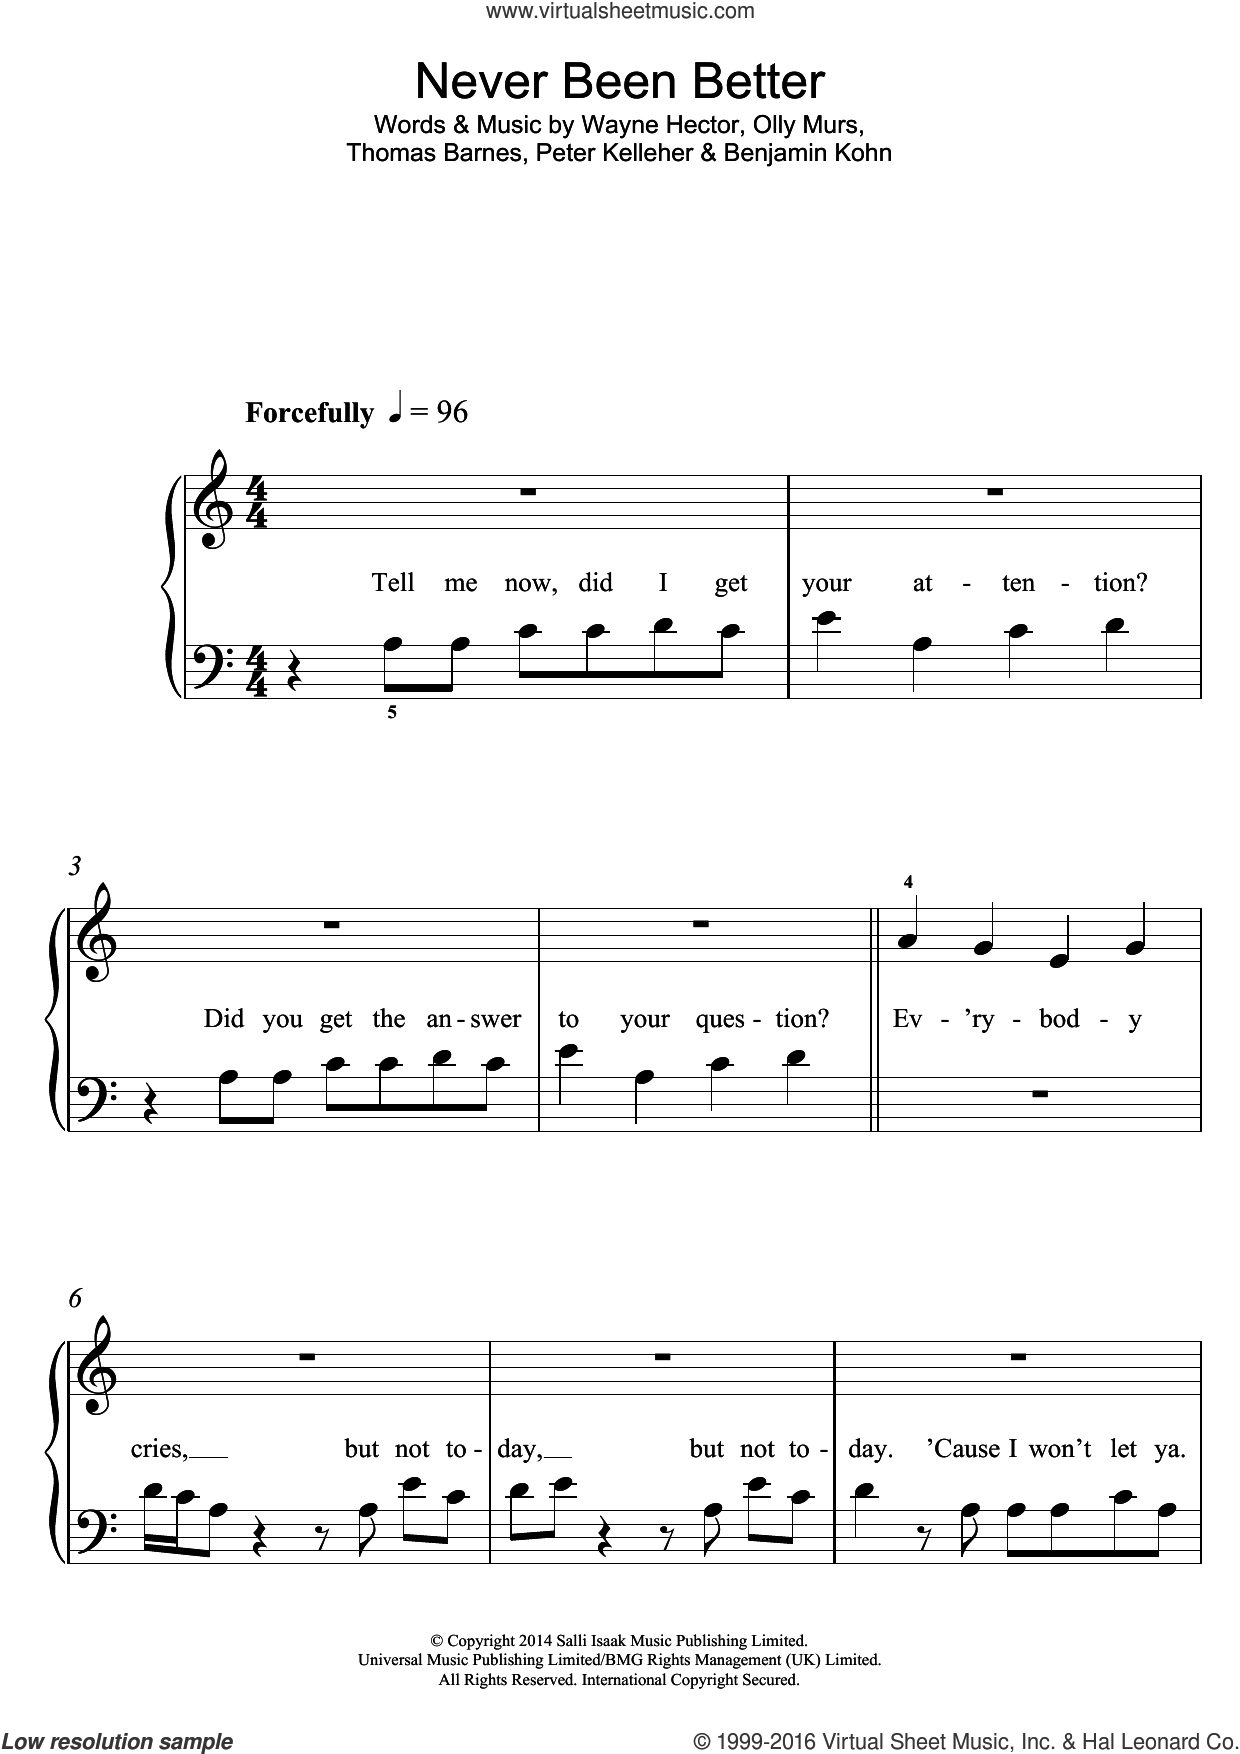 Never Been Better sheet music for voice, piano or guitar by Wayne Hector, Benjamin Kohn, Peter Kelleher and Thomas Barnes. Score Image Preview.